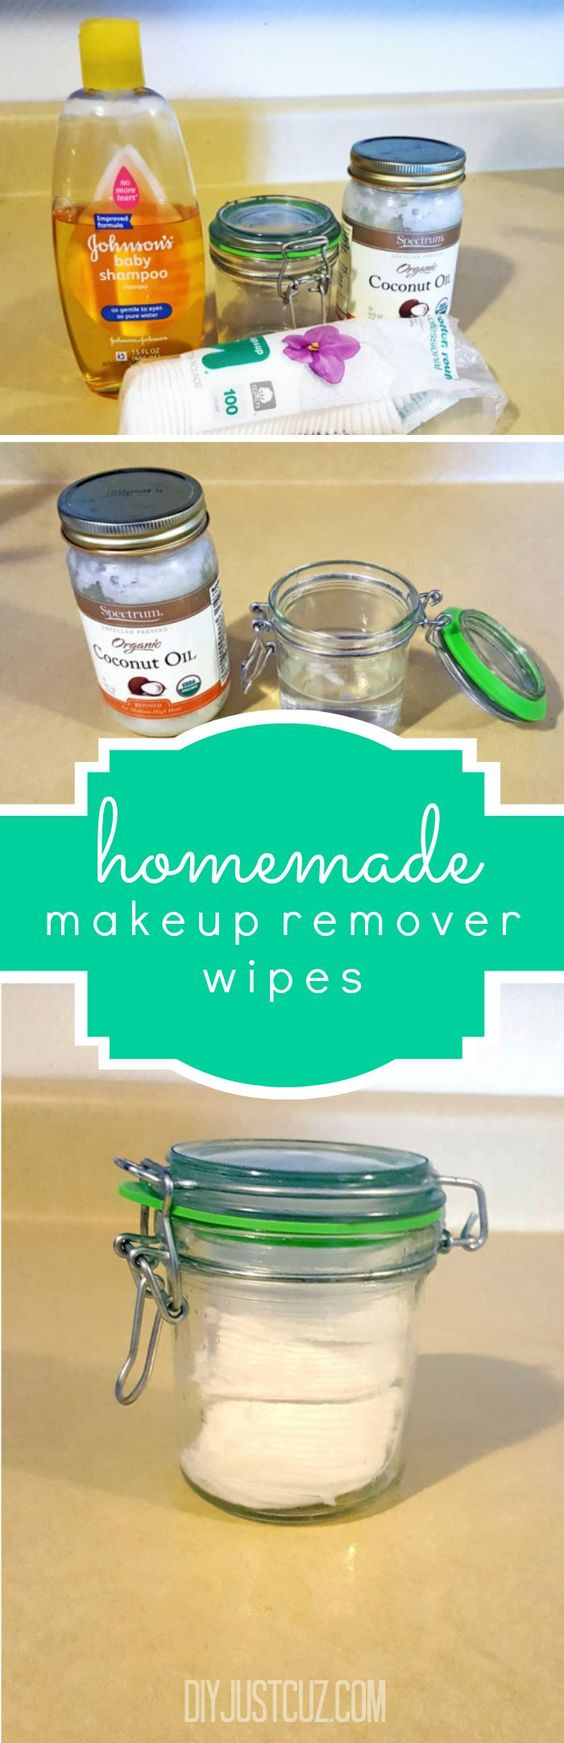 Makeup remover wipes, Homemade makeup remover and Makeup